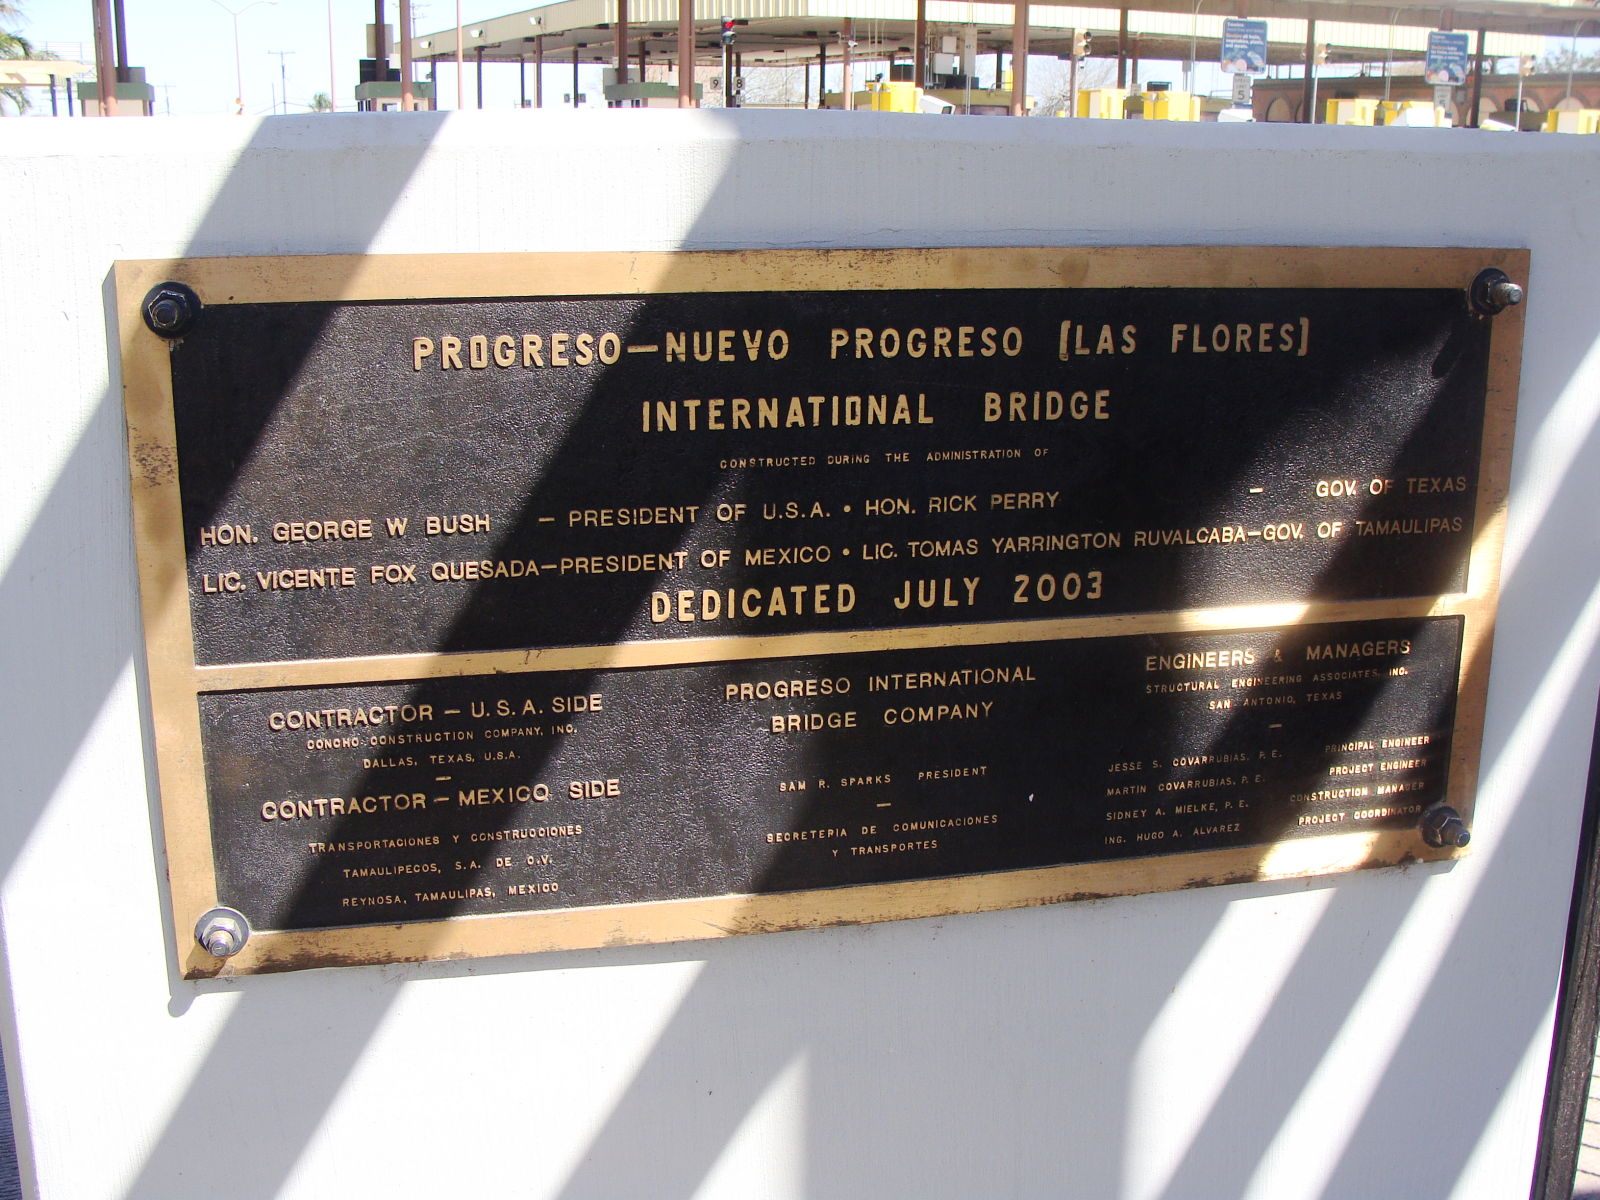 Bridgehunter com | Progreso-Nuevo Progreso International Bridge